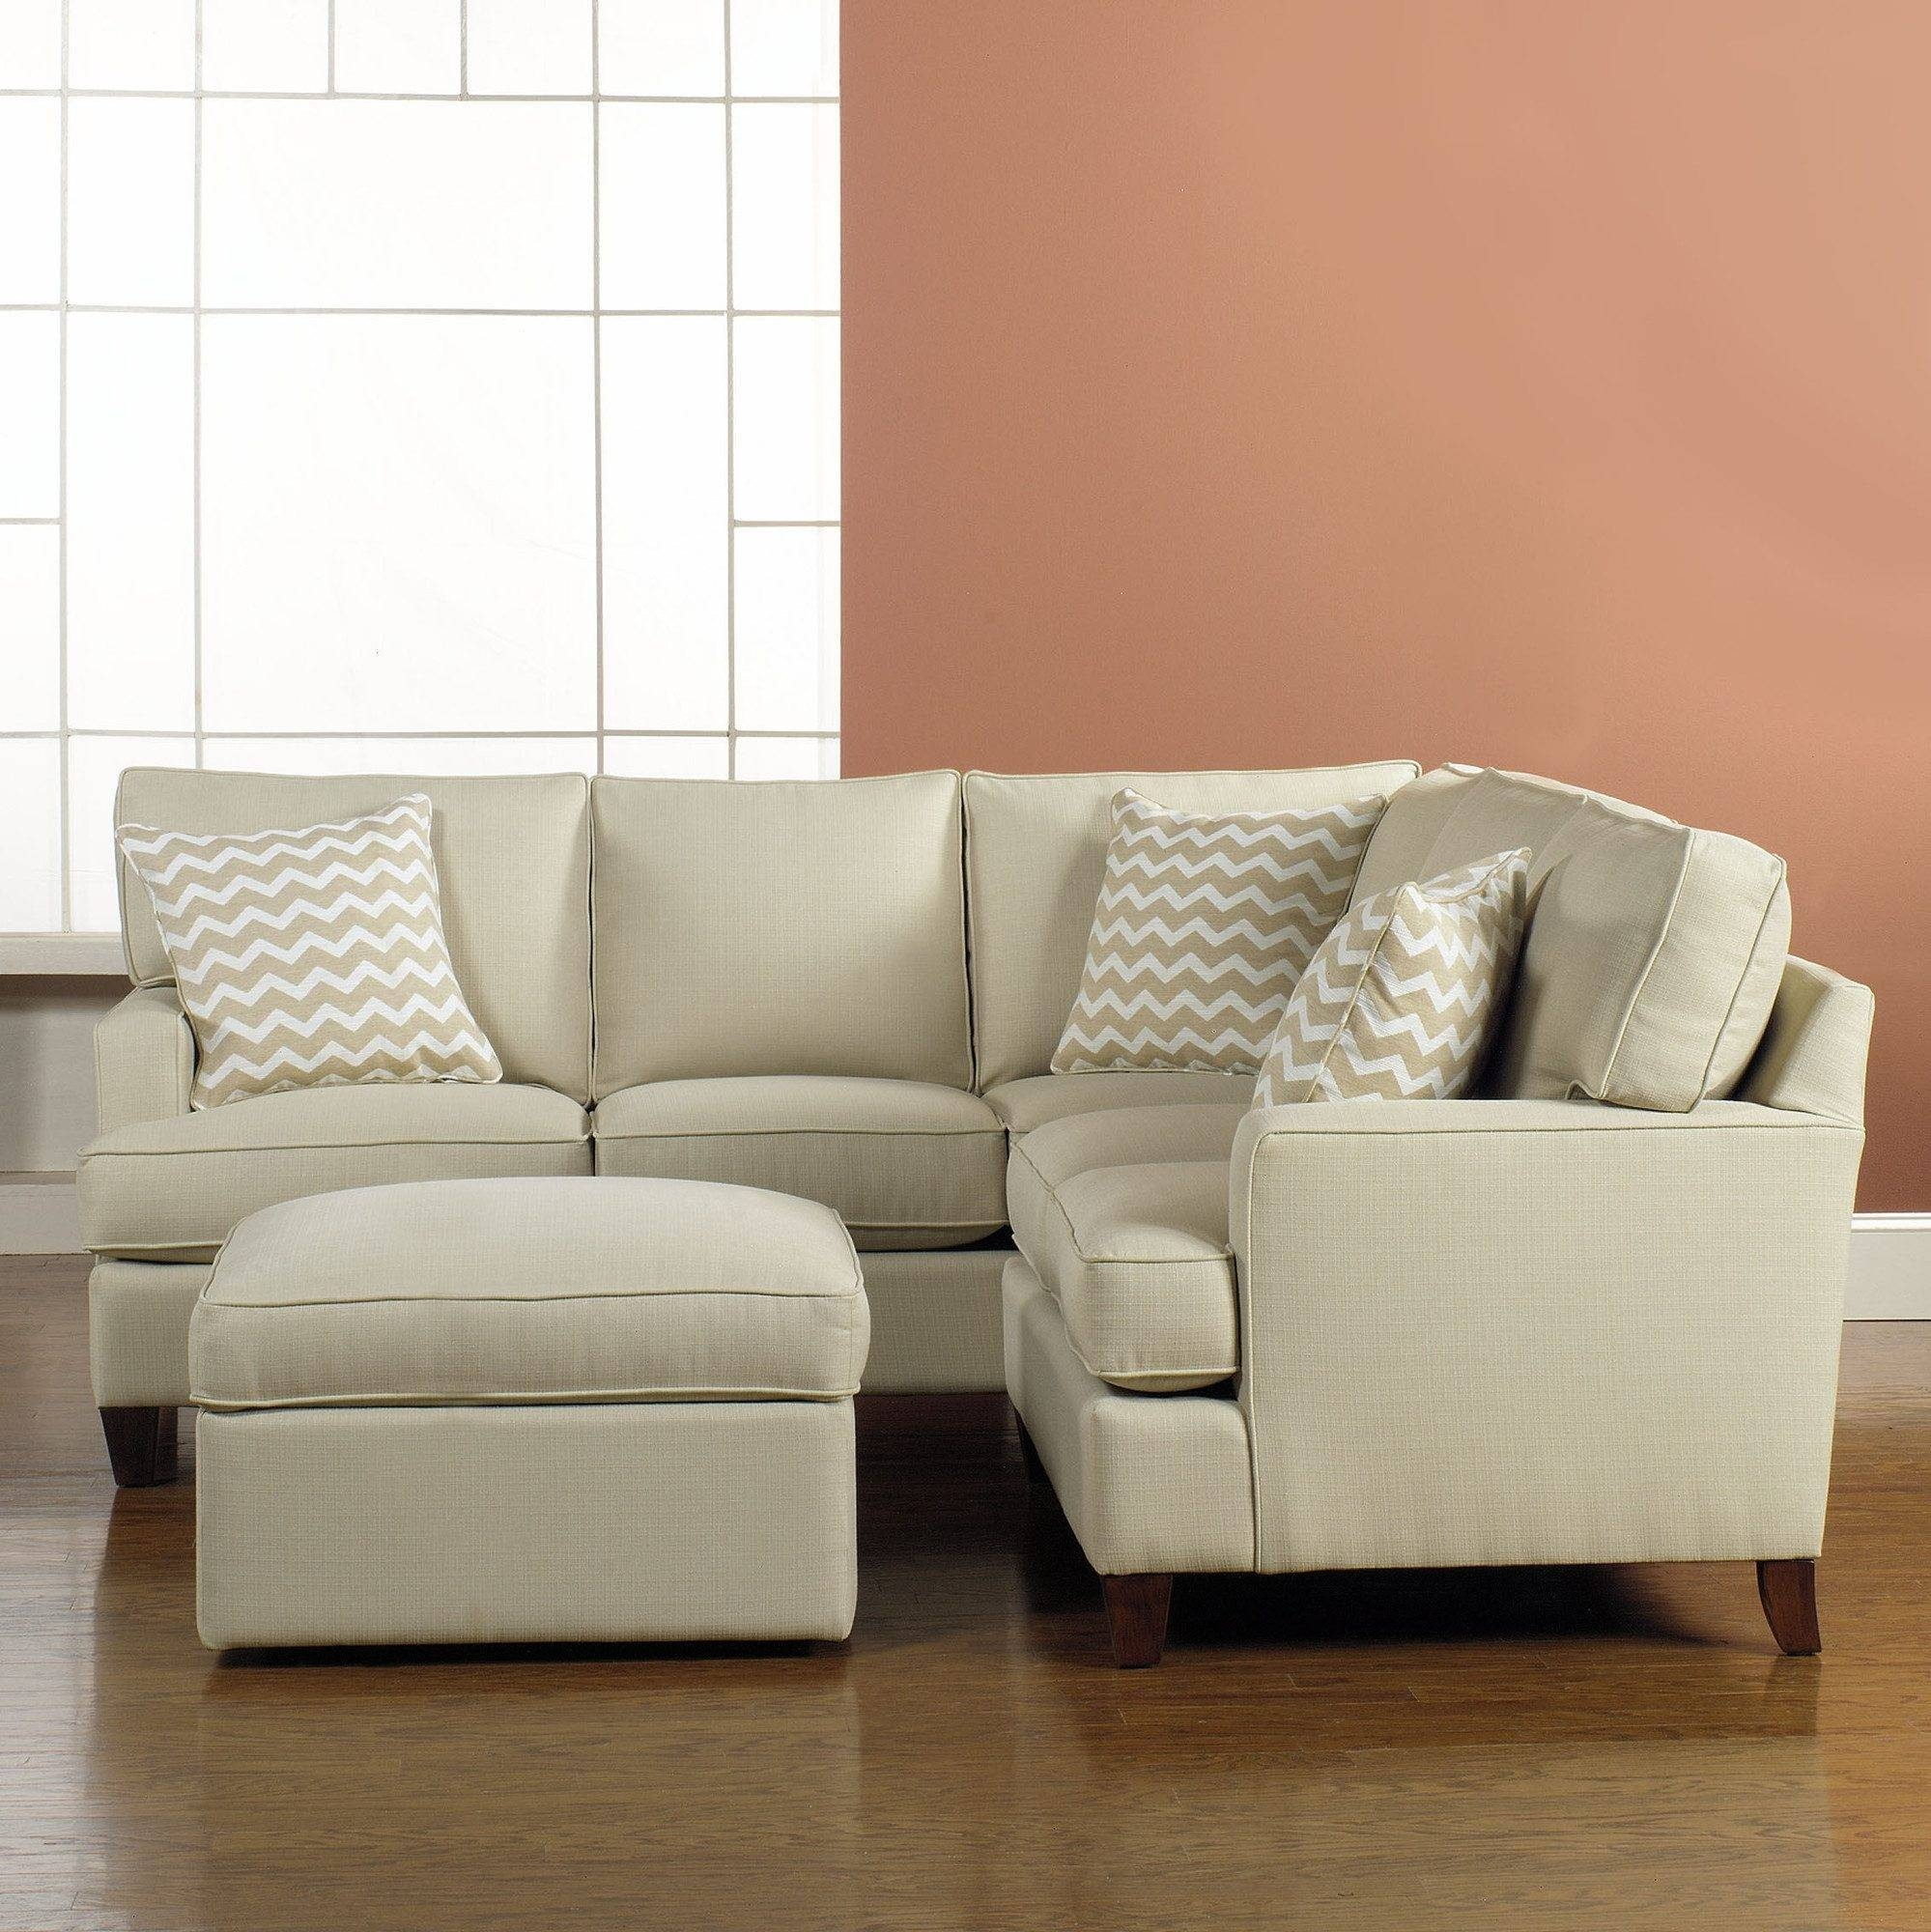 Small Sectional Sofas. Amazing Sleeper Sectional Sofas With Sofa throughout Microsuede Sleeper Sofas (Image 13 of 15)